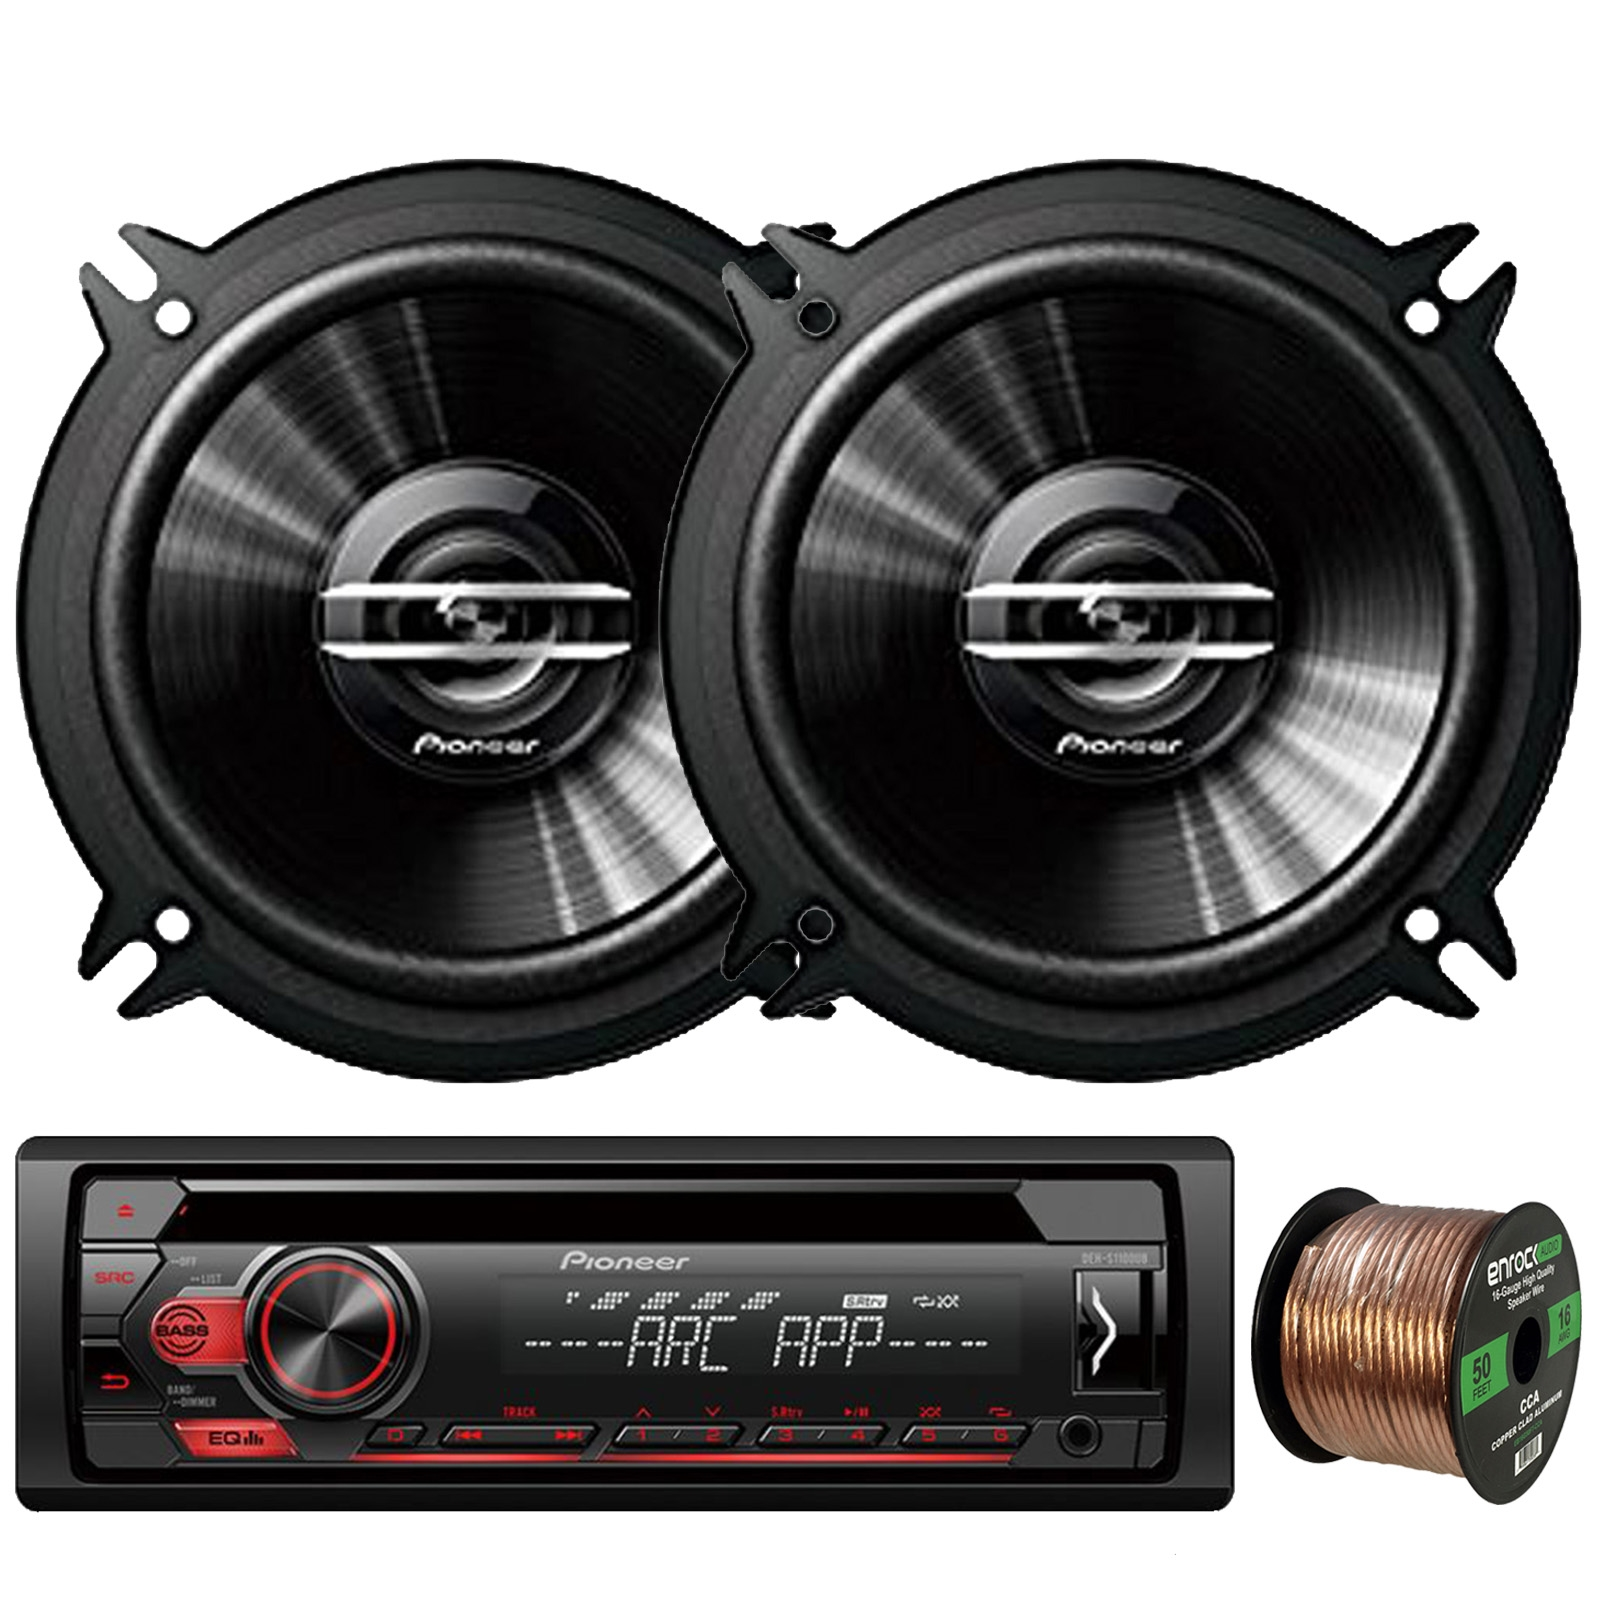 "Pioneer DEH-S1100UB Single-DIN CD Player AM/FM Car Stereo Receiver, 2 x Pioneer TS-G1320S 5.25"" 2-Way 250W Max Coaxial Car Speakers, Enrock Audio 16-Gauge 50Ft. CCA Speaker Wire"